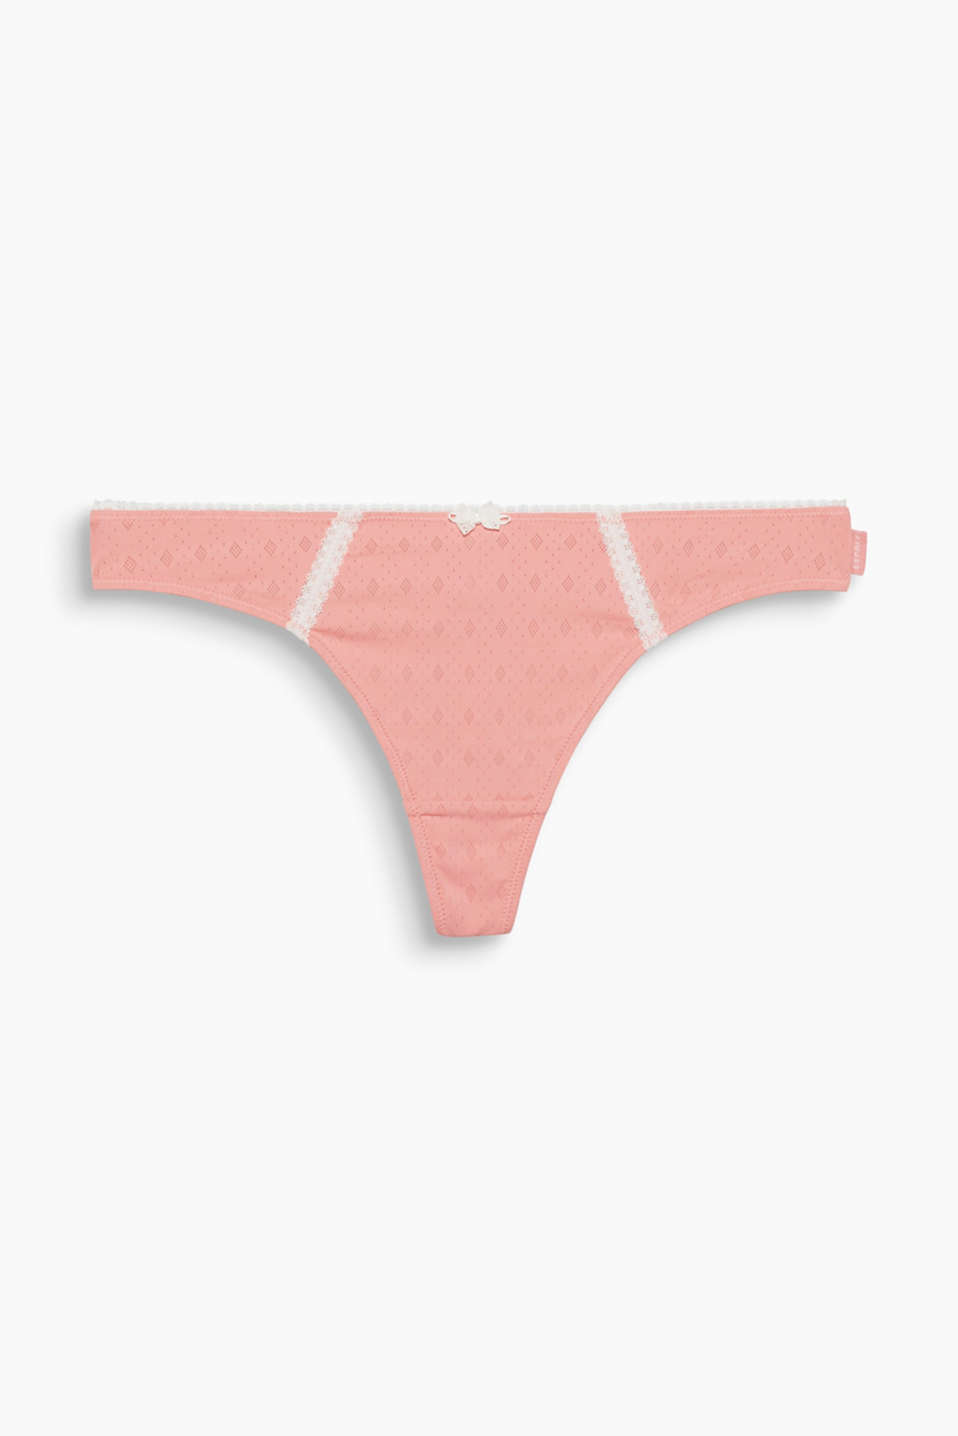 KOKO Collection - soft microfibres, a geometric openwork pattern and shade of pink make this thong a must-have piece!